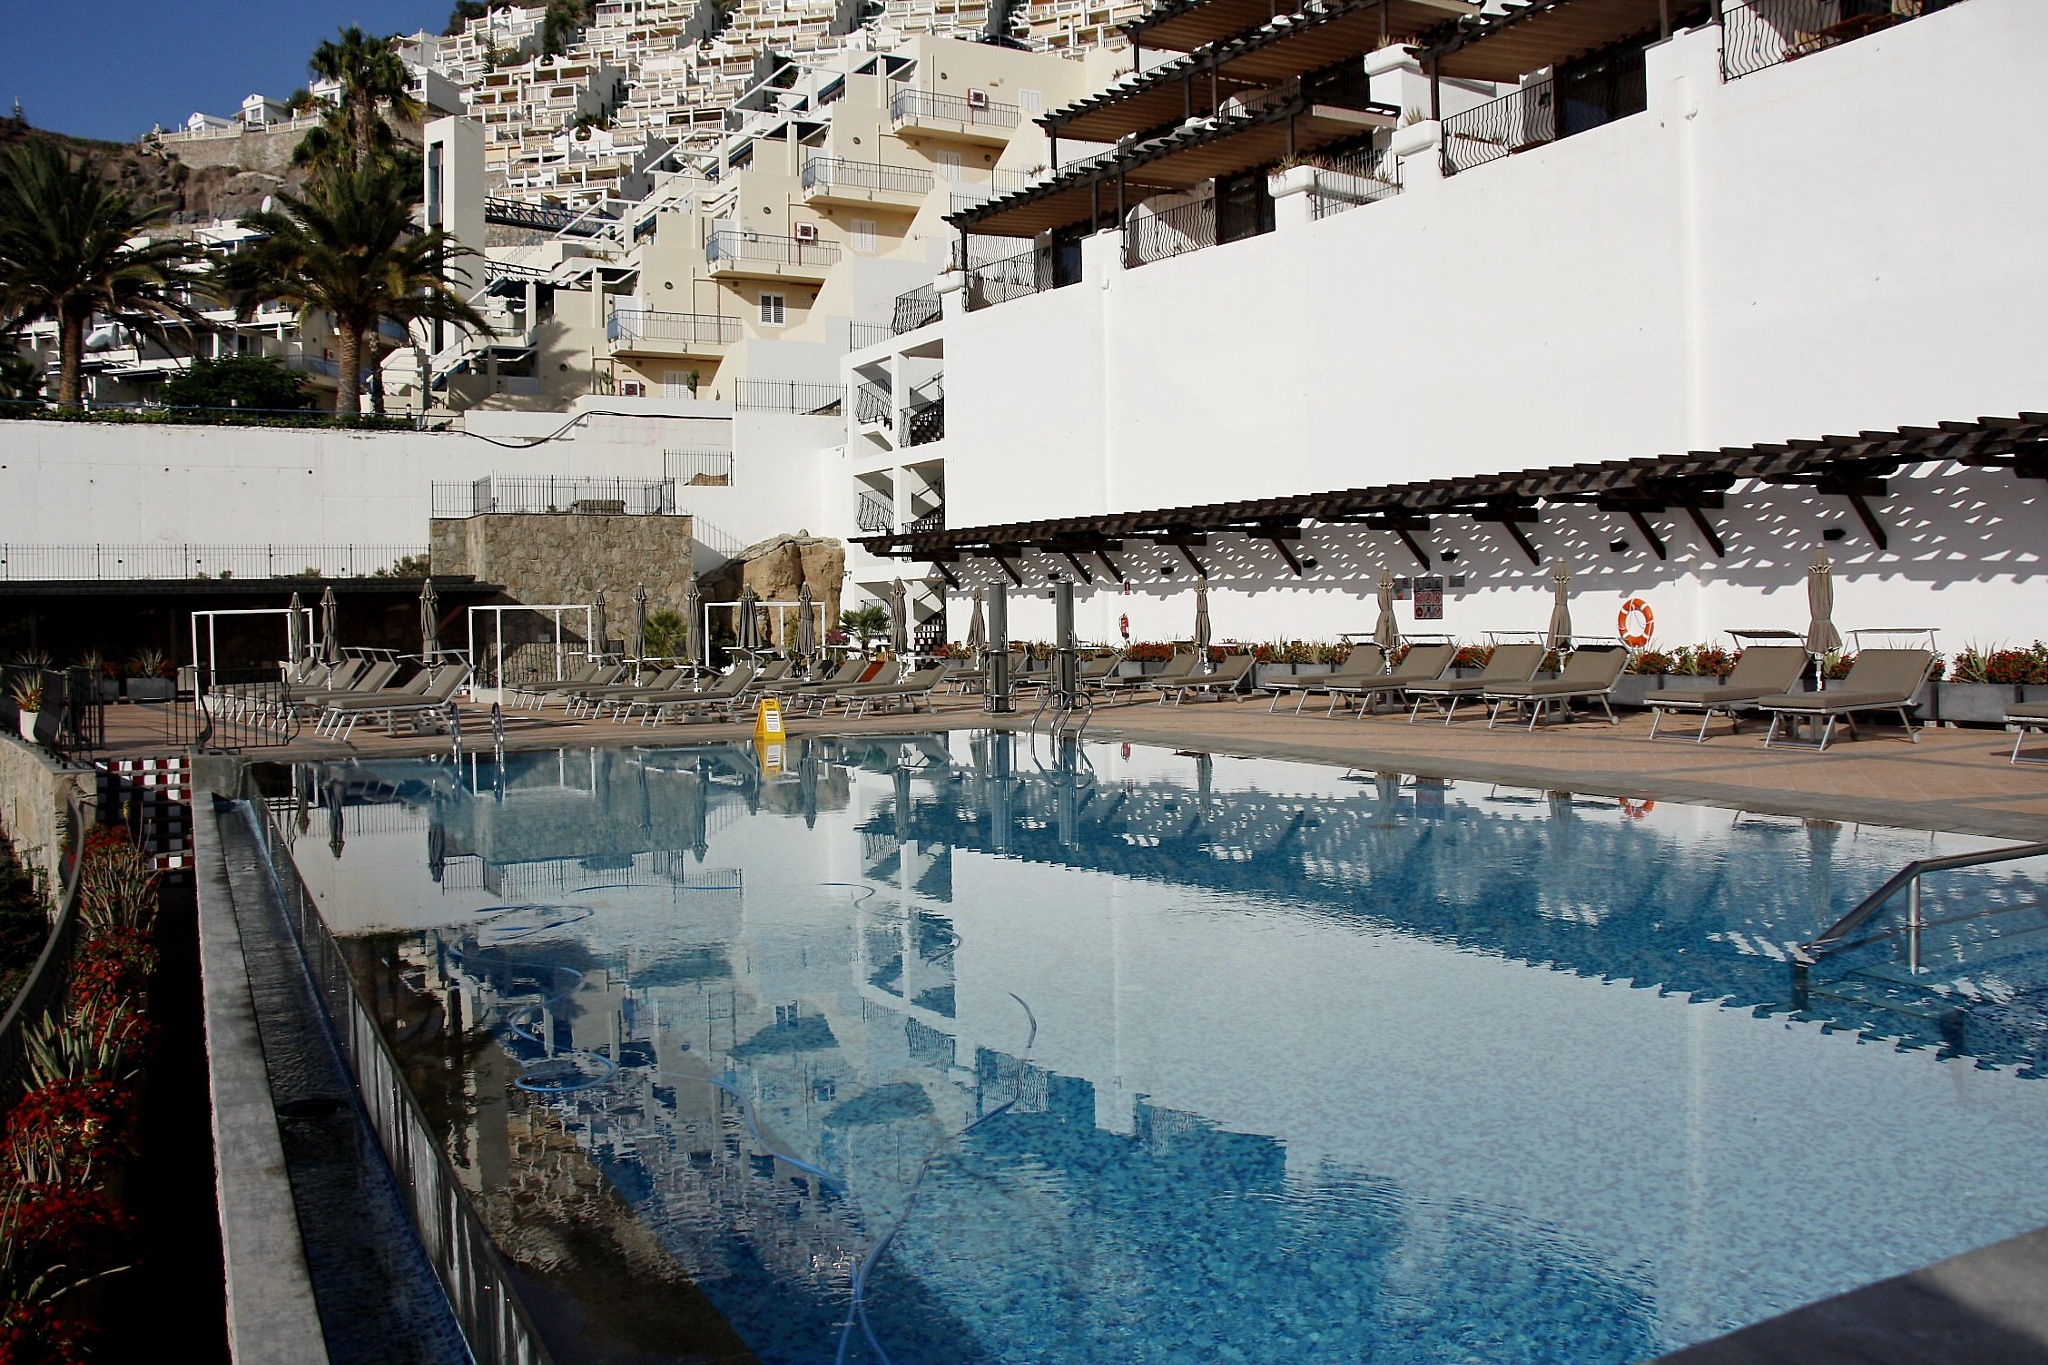 GRAND CANARIA by Paulus5301